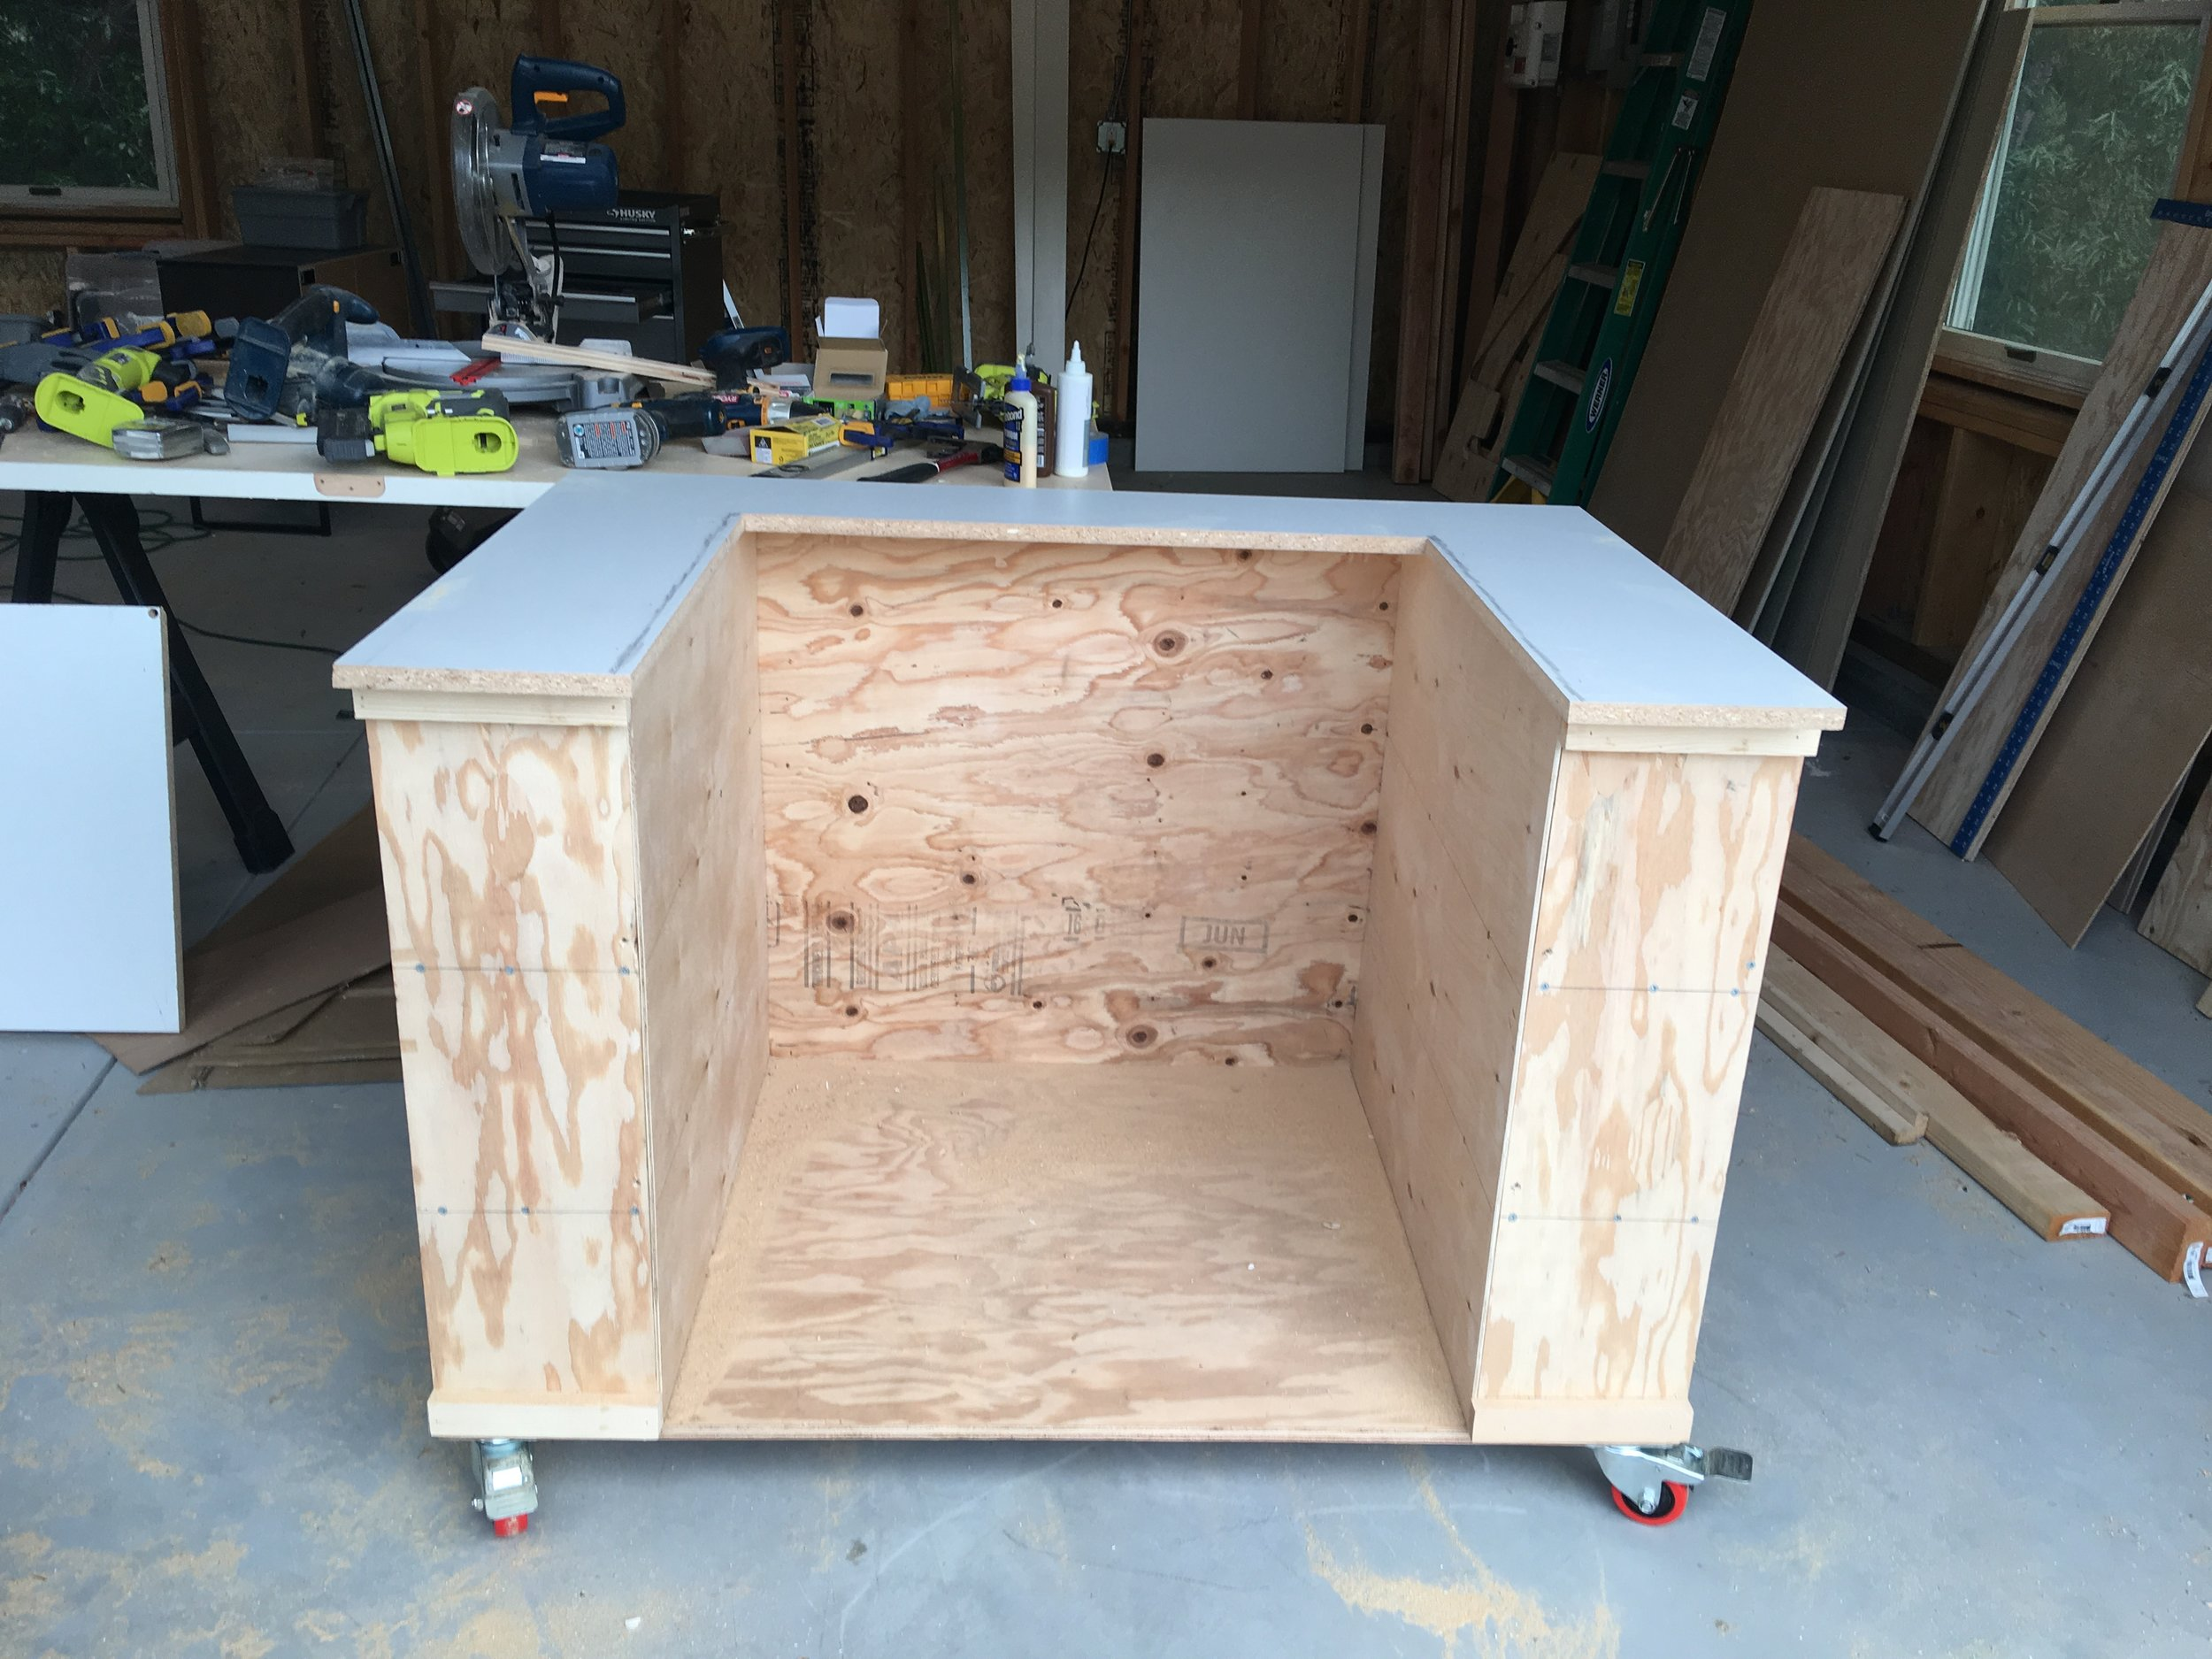 Top cut out for table saw.